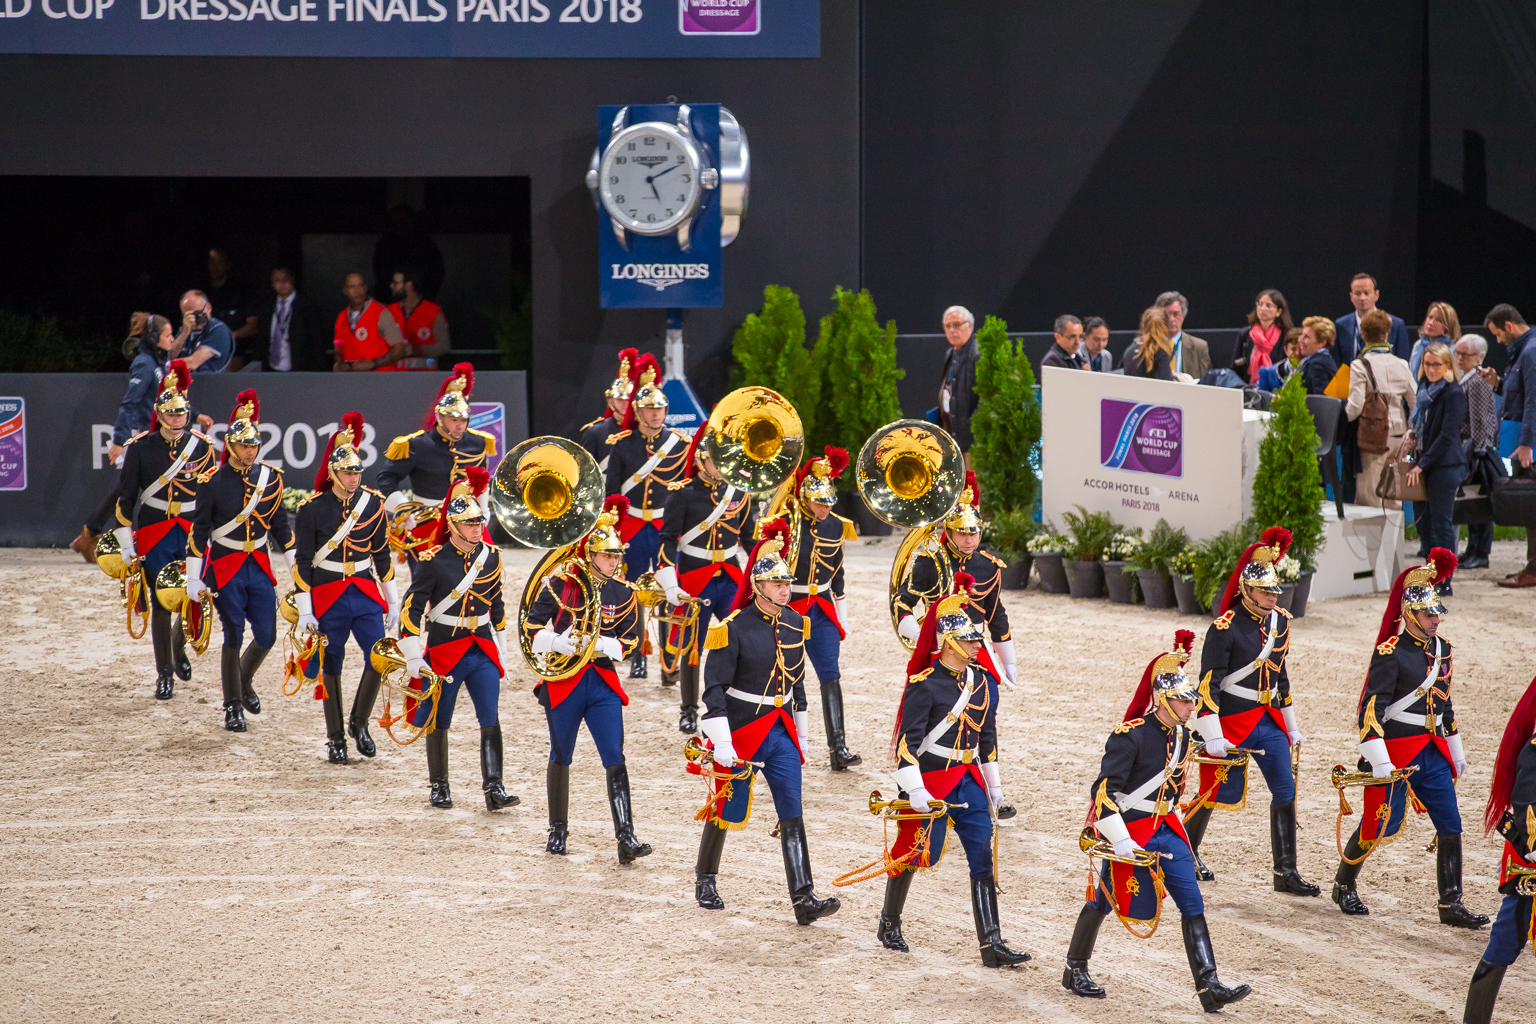 Fitness On Toast - FEI Dressage World Cup Finals Paris April 2018 France-12